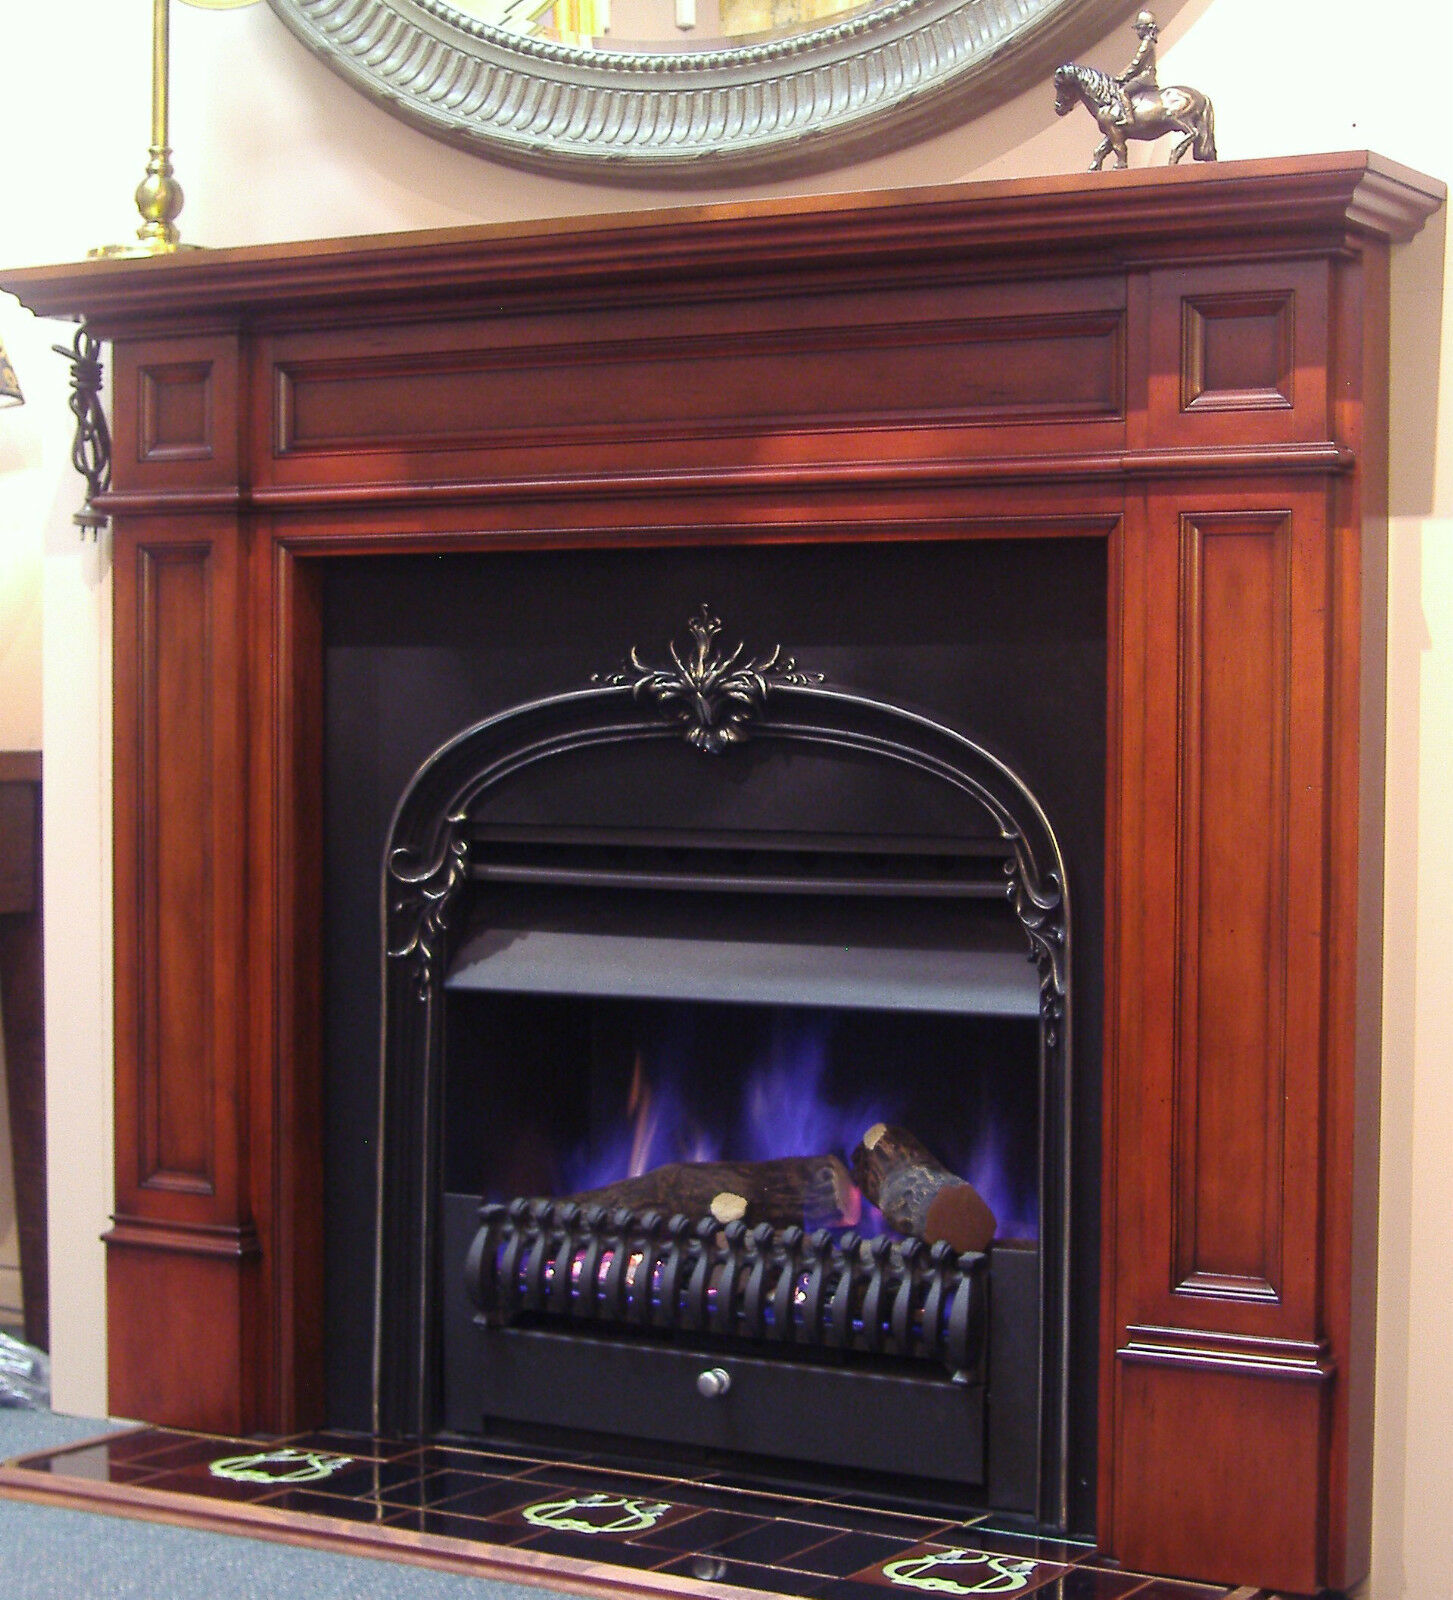 Fireplace surround parliament timber mantlepiece fire mantel piece antique aud - Fireplace mantel piece ...